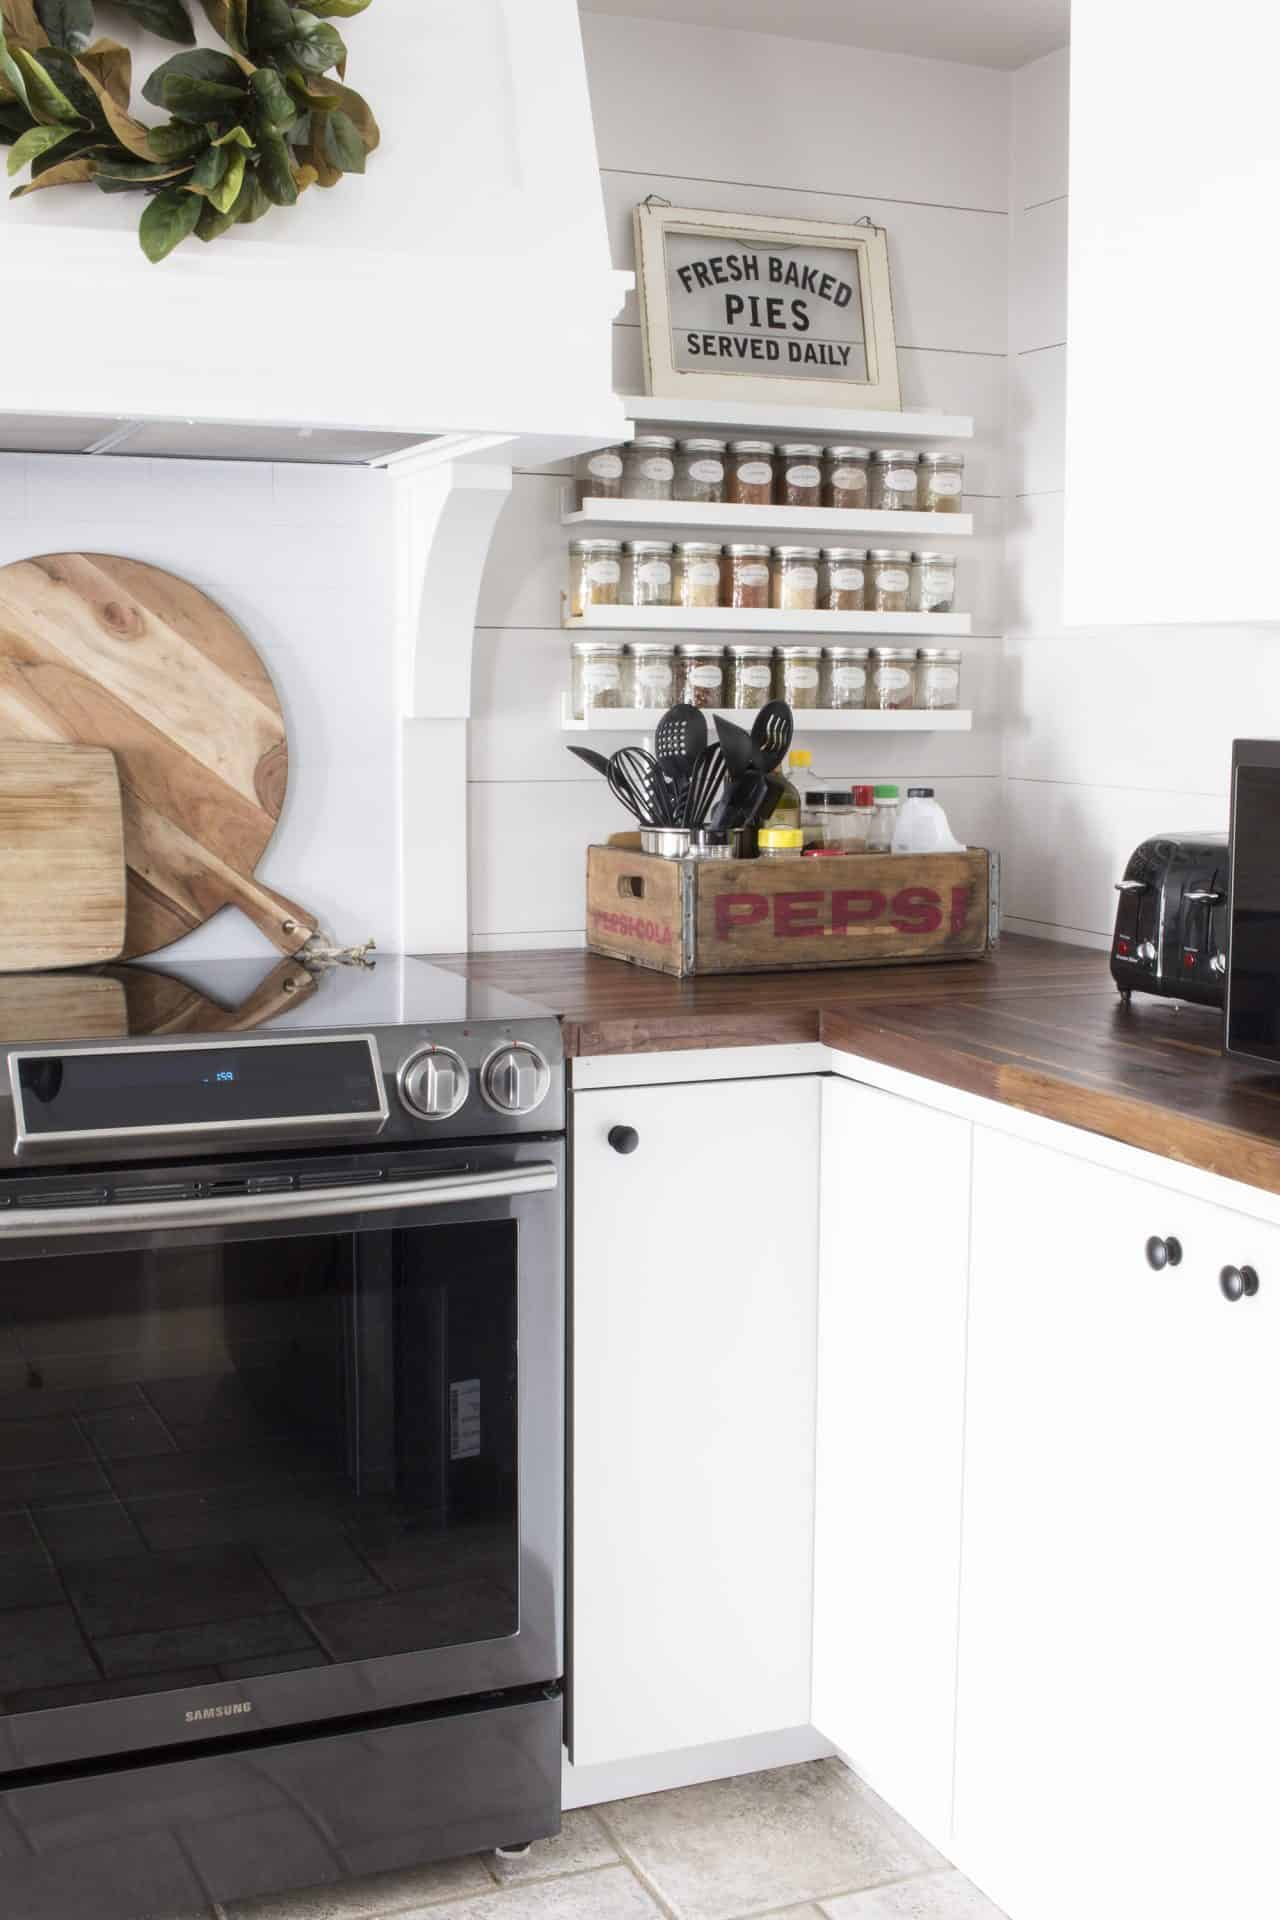 Ikea picture ledge as spice rack | pepsi crate kitchen storage